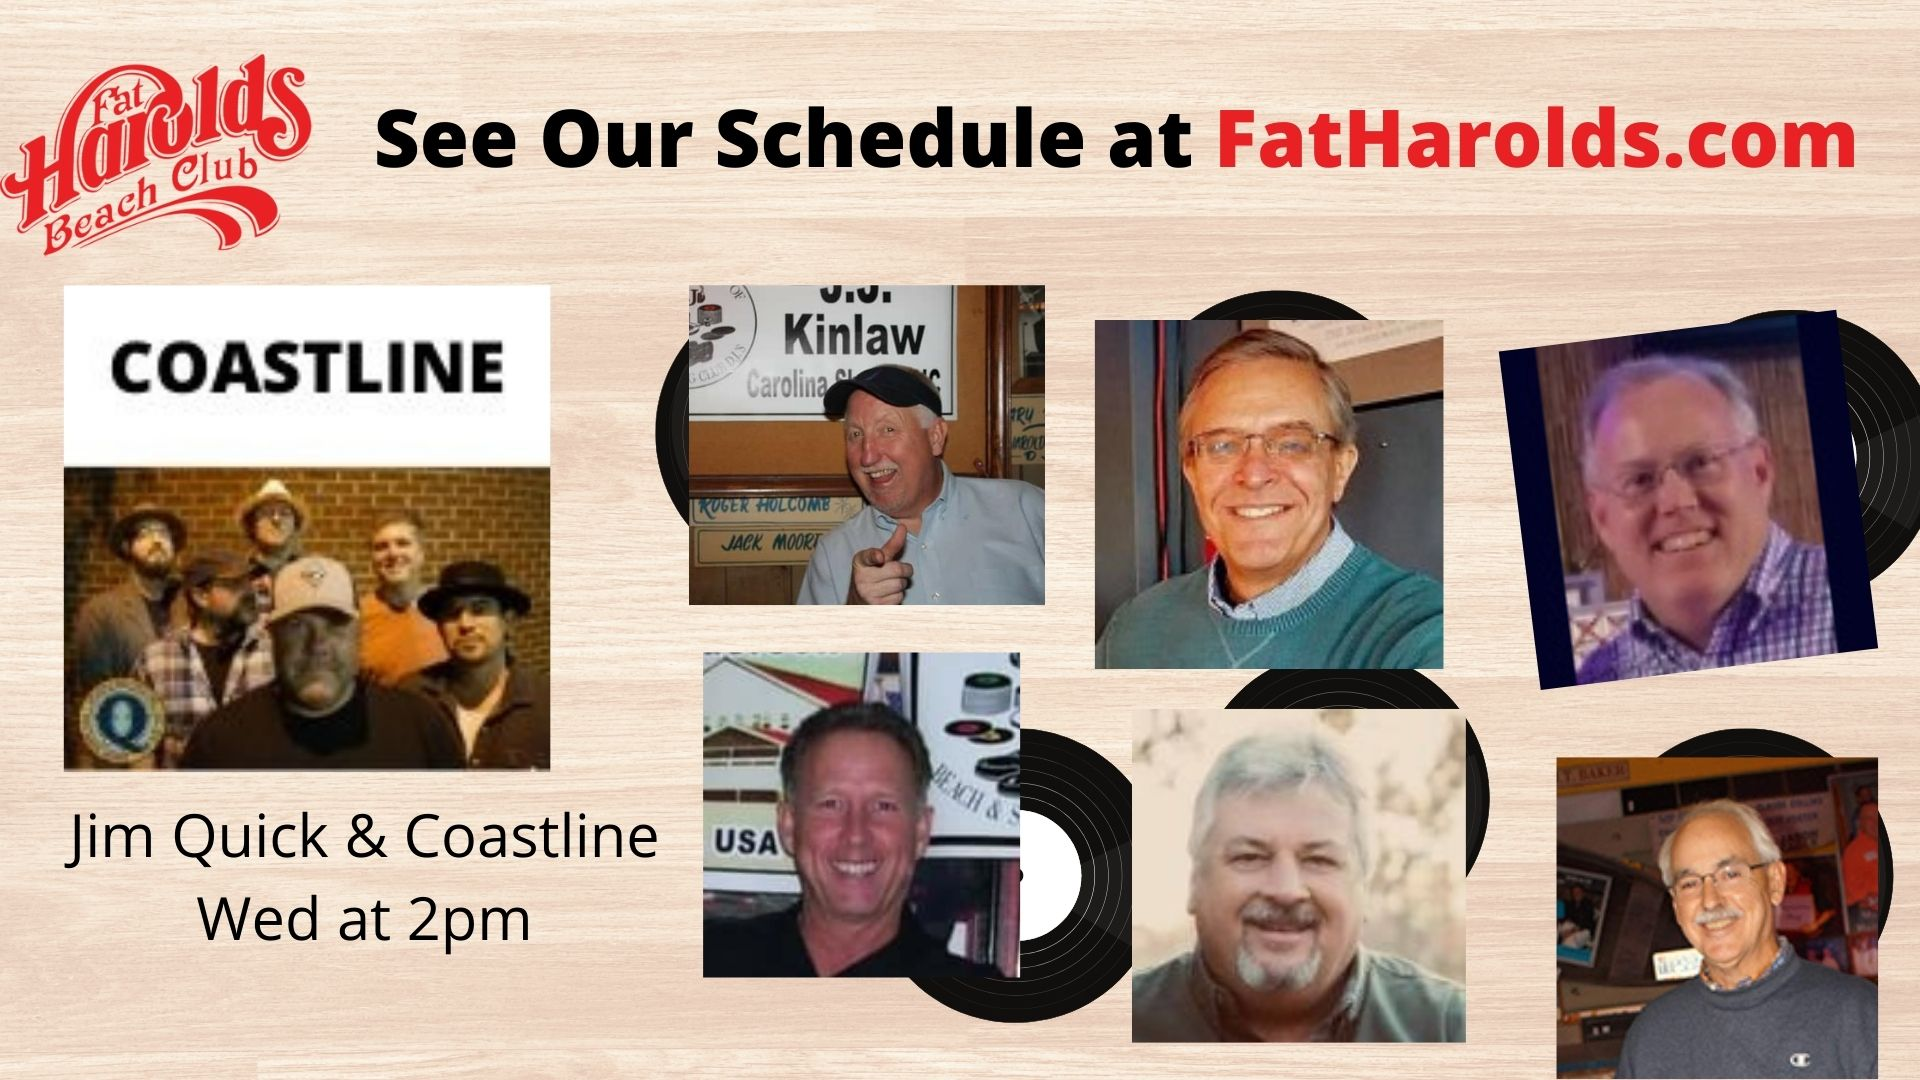 Wednesday SOS at the Fat Man's House – COASTLINE TIME